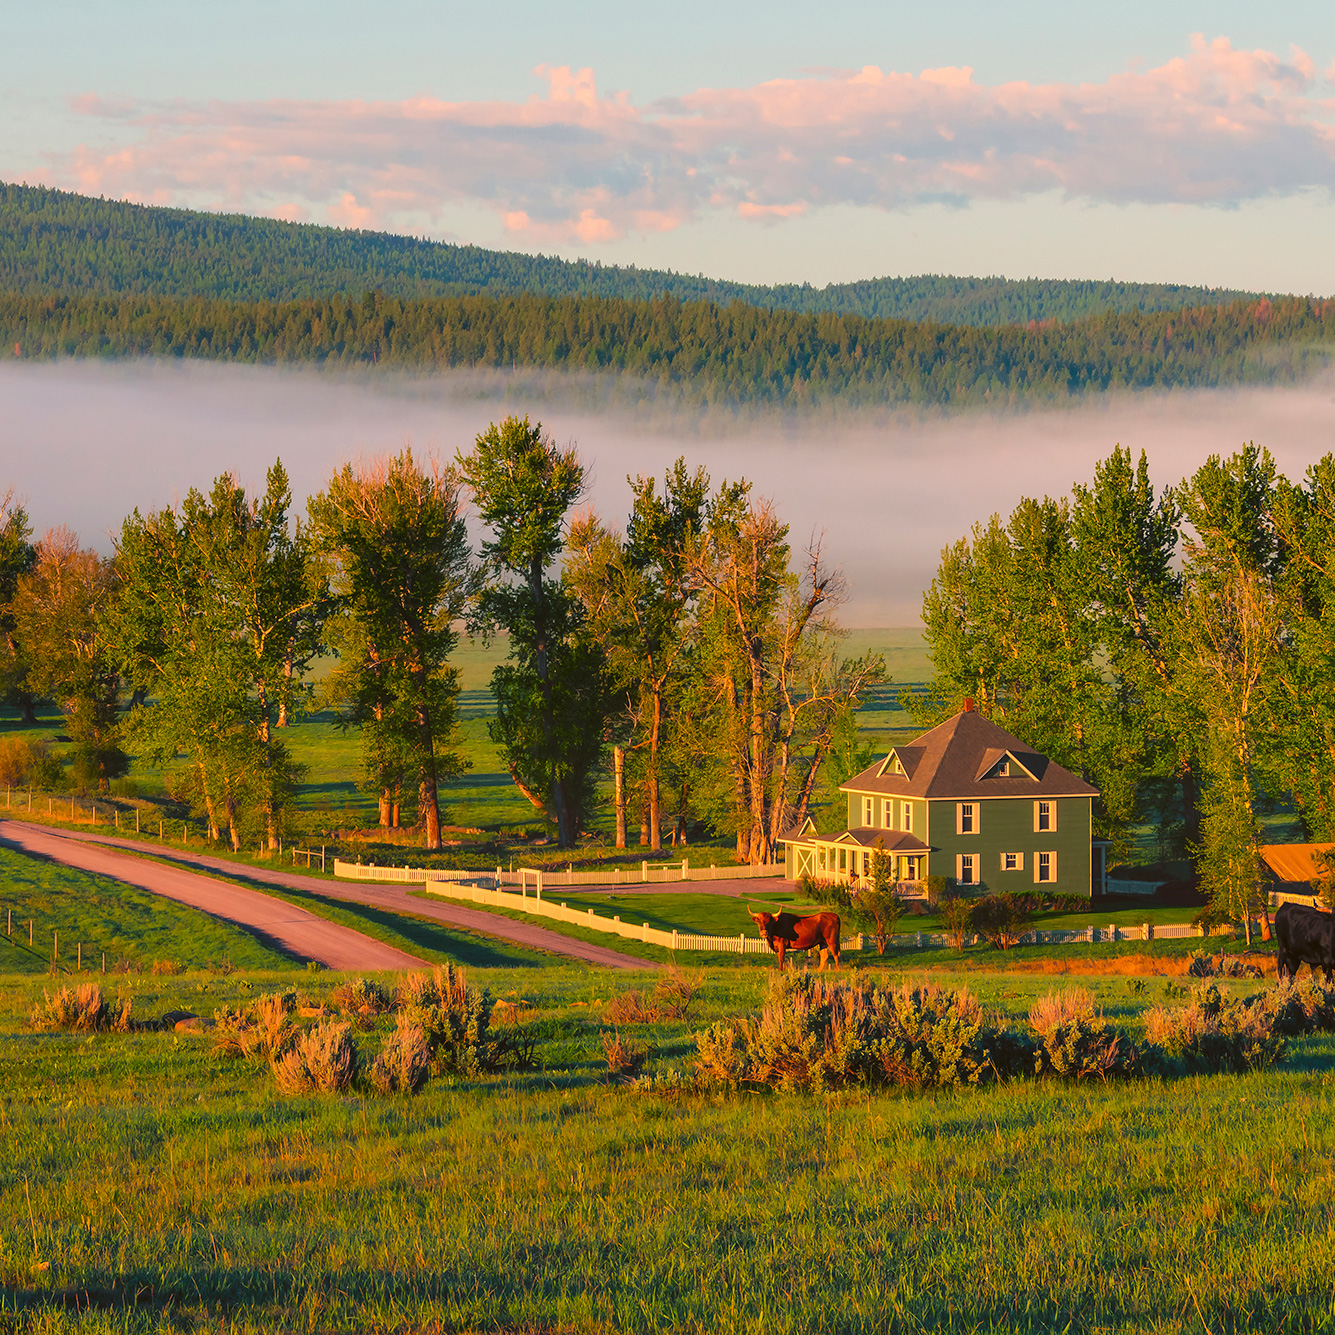 From California to Maine, The Best Hotels For Fall Foliage